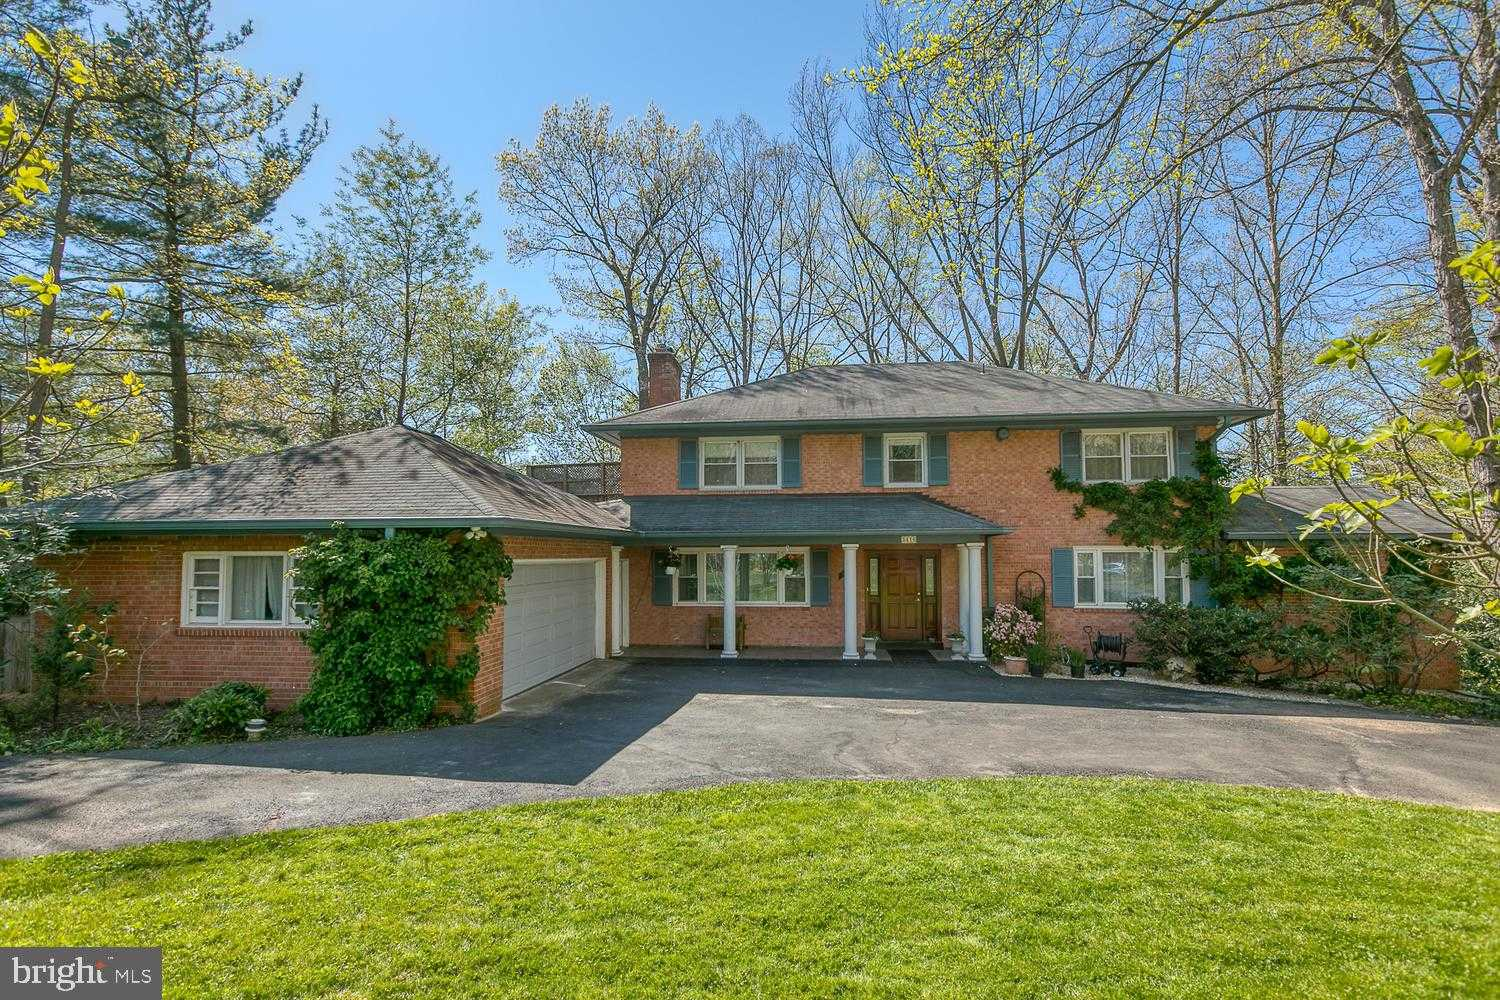 $1,620,000 - 5Br/4Ba -  for Sale in Lake Barcroft, Falls Church